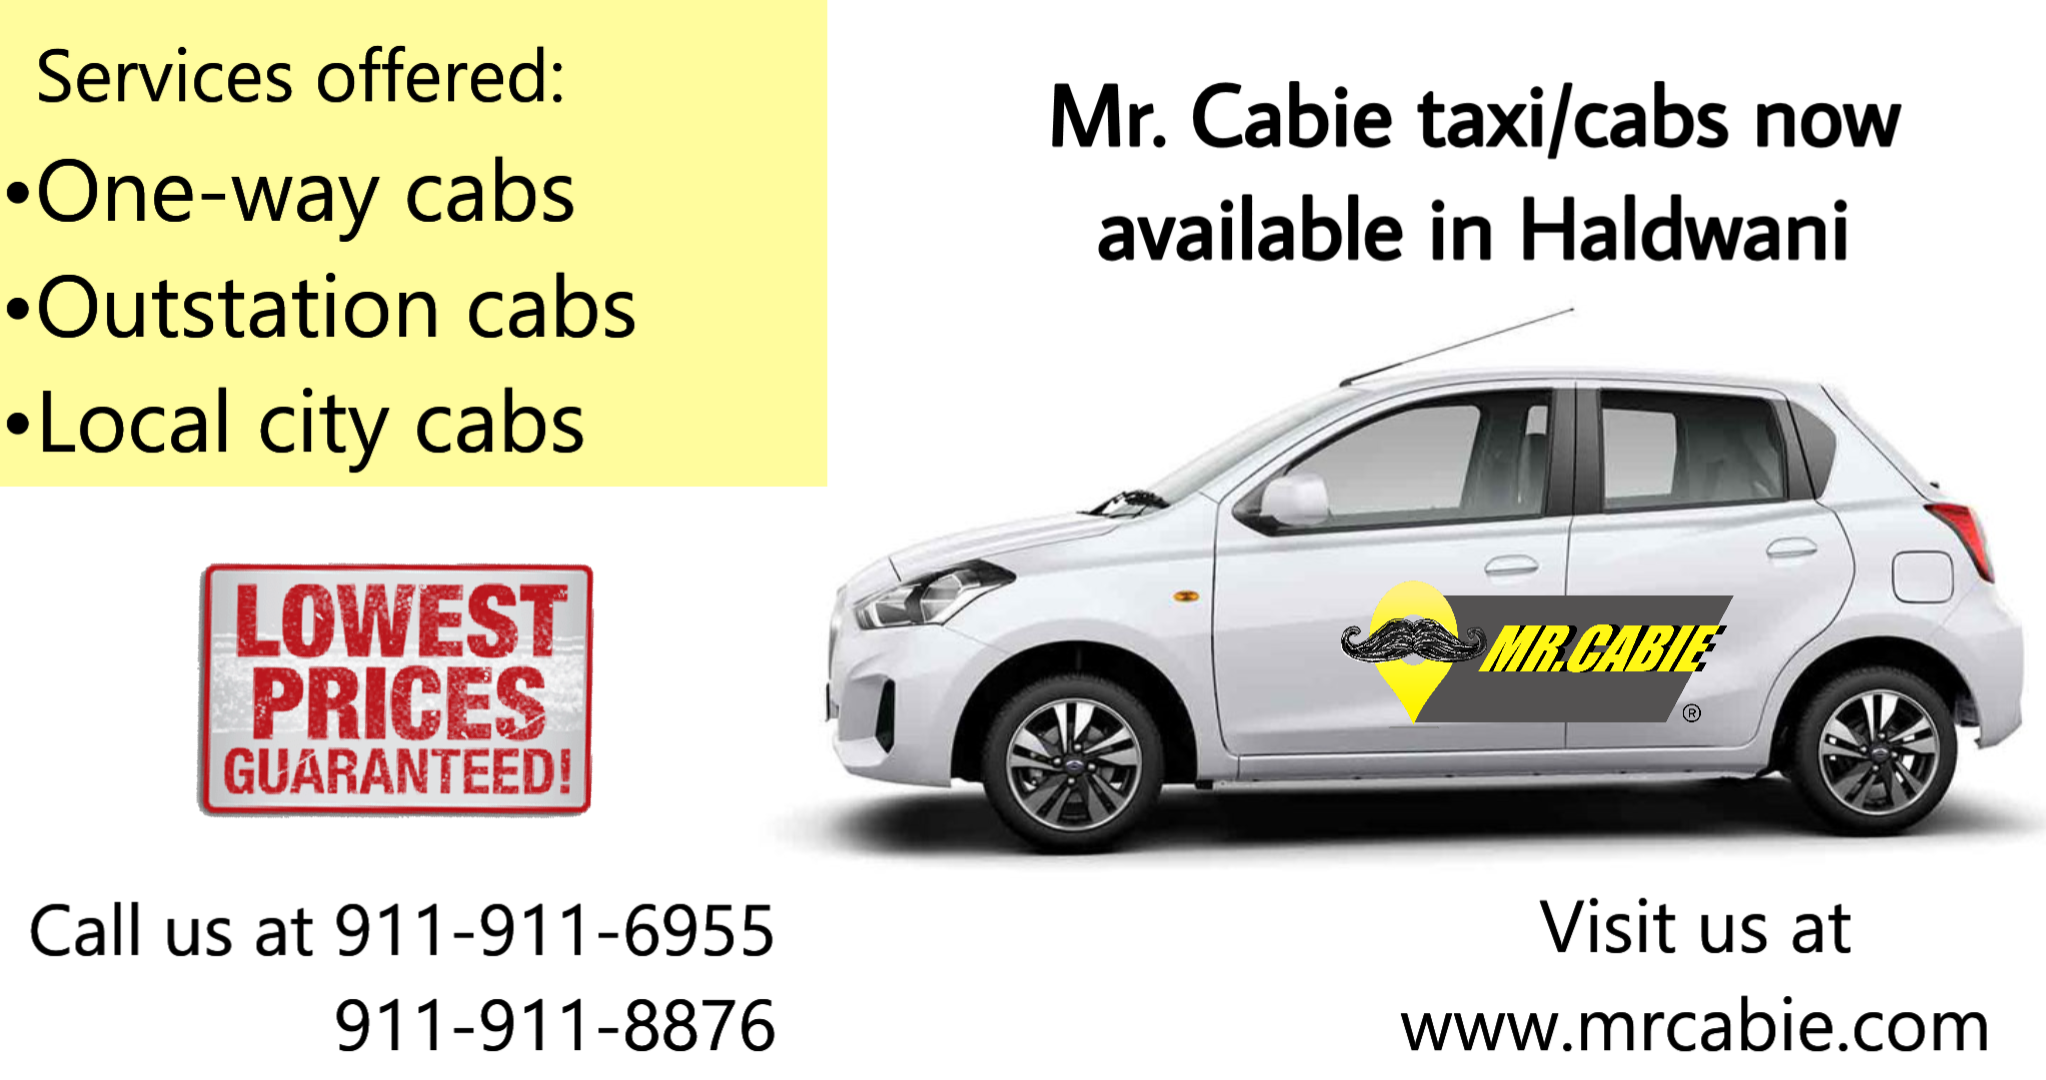 Mr. cabie taxi service in Haldwani